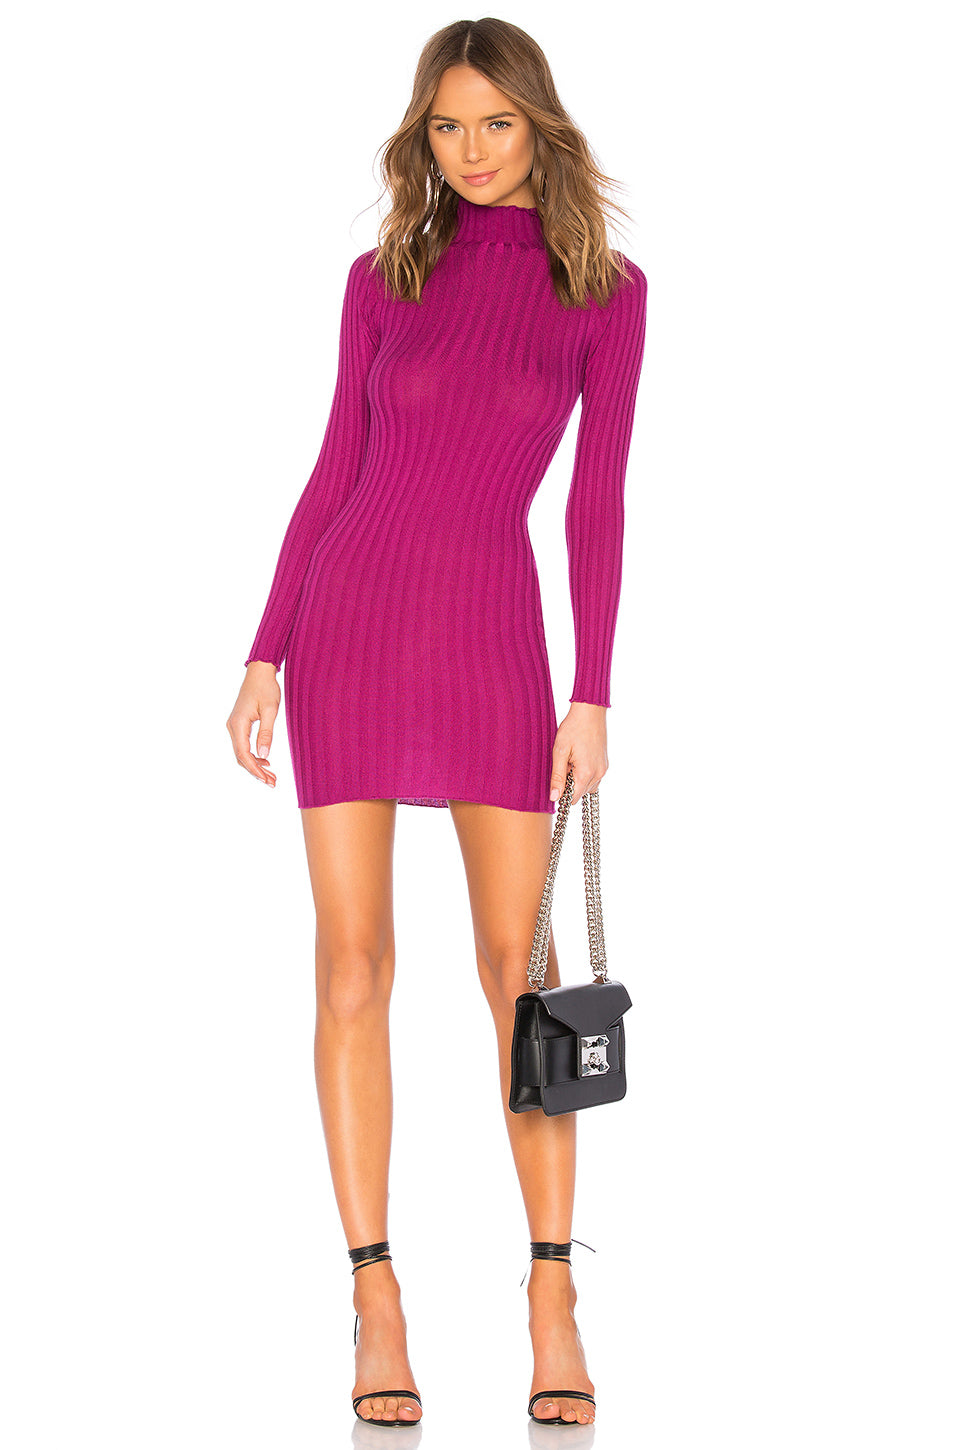 Be Fierce Mini Dress in Magenta